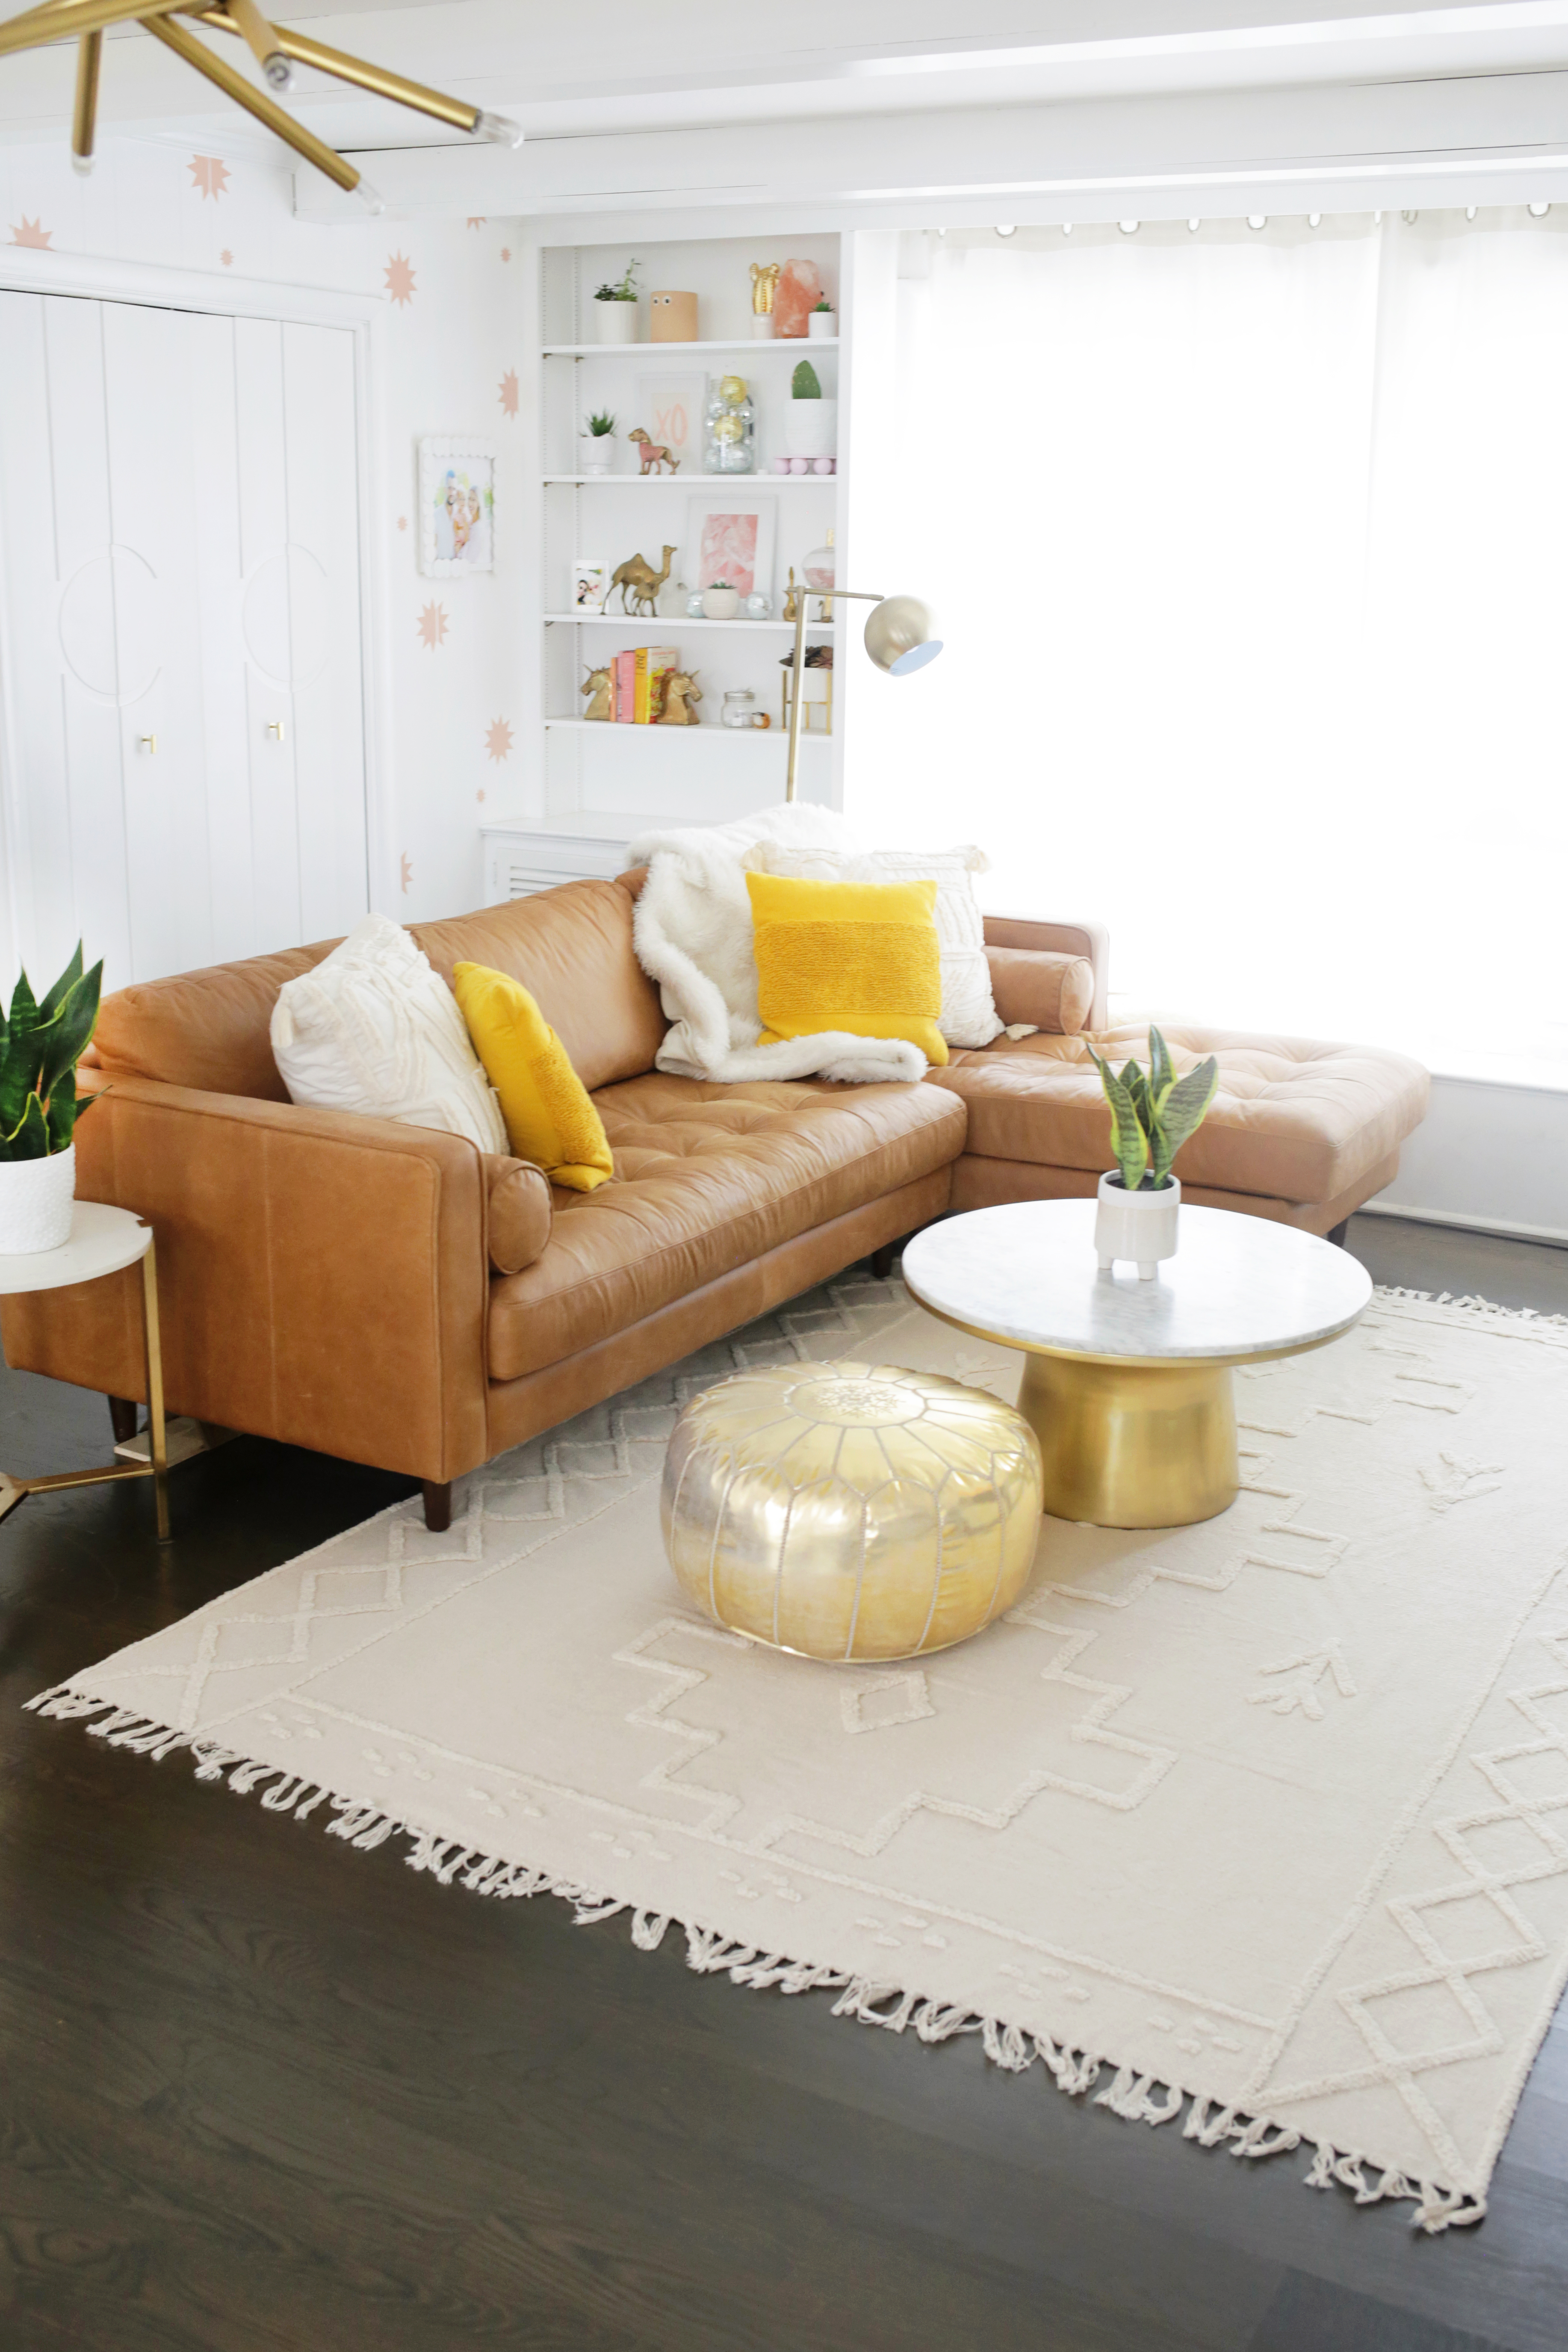 Area Rugs For Under $500!